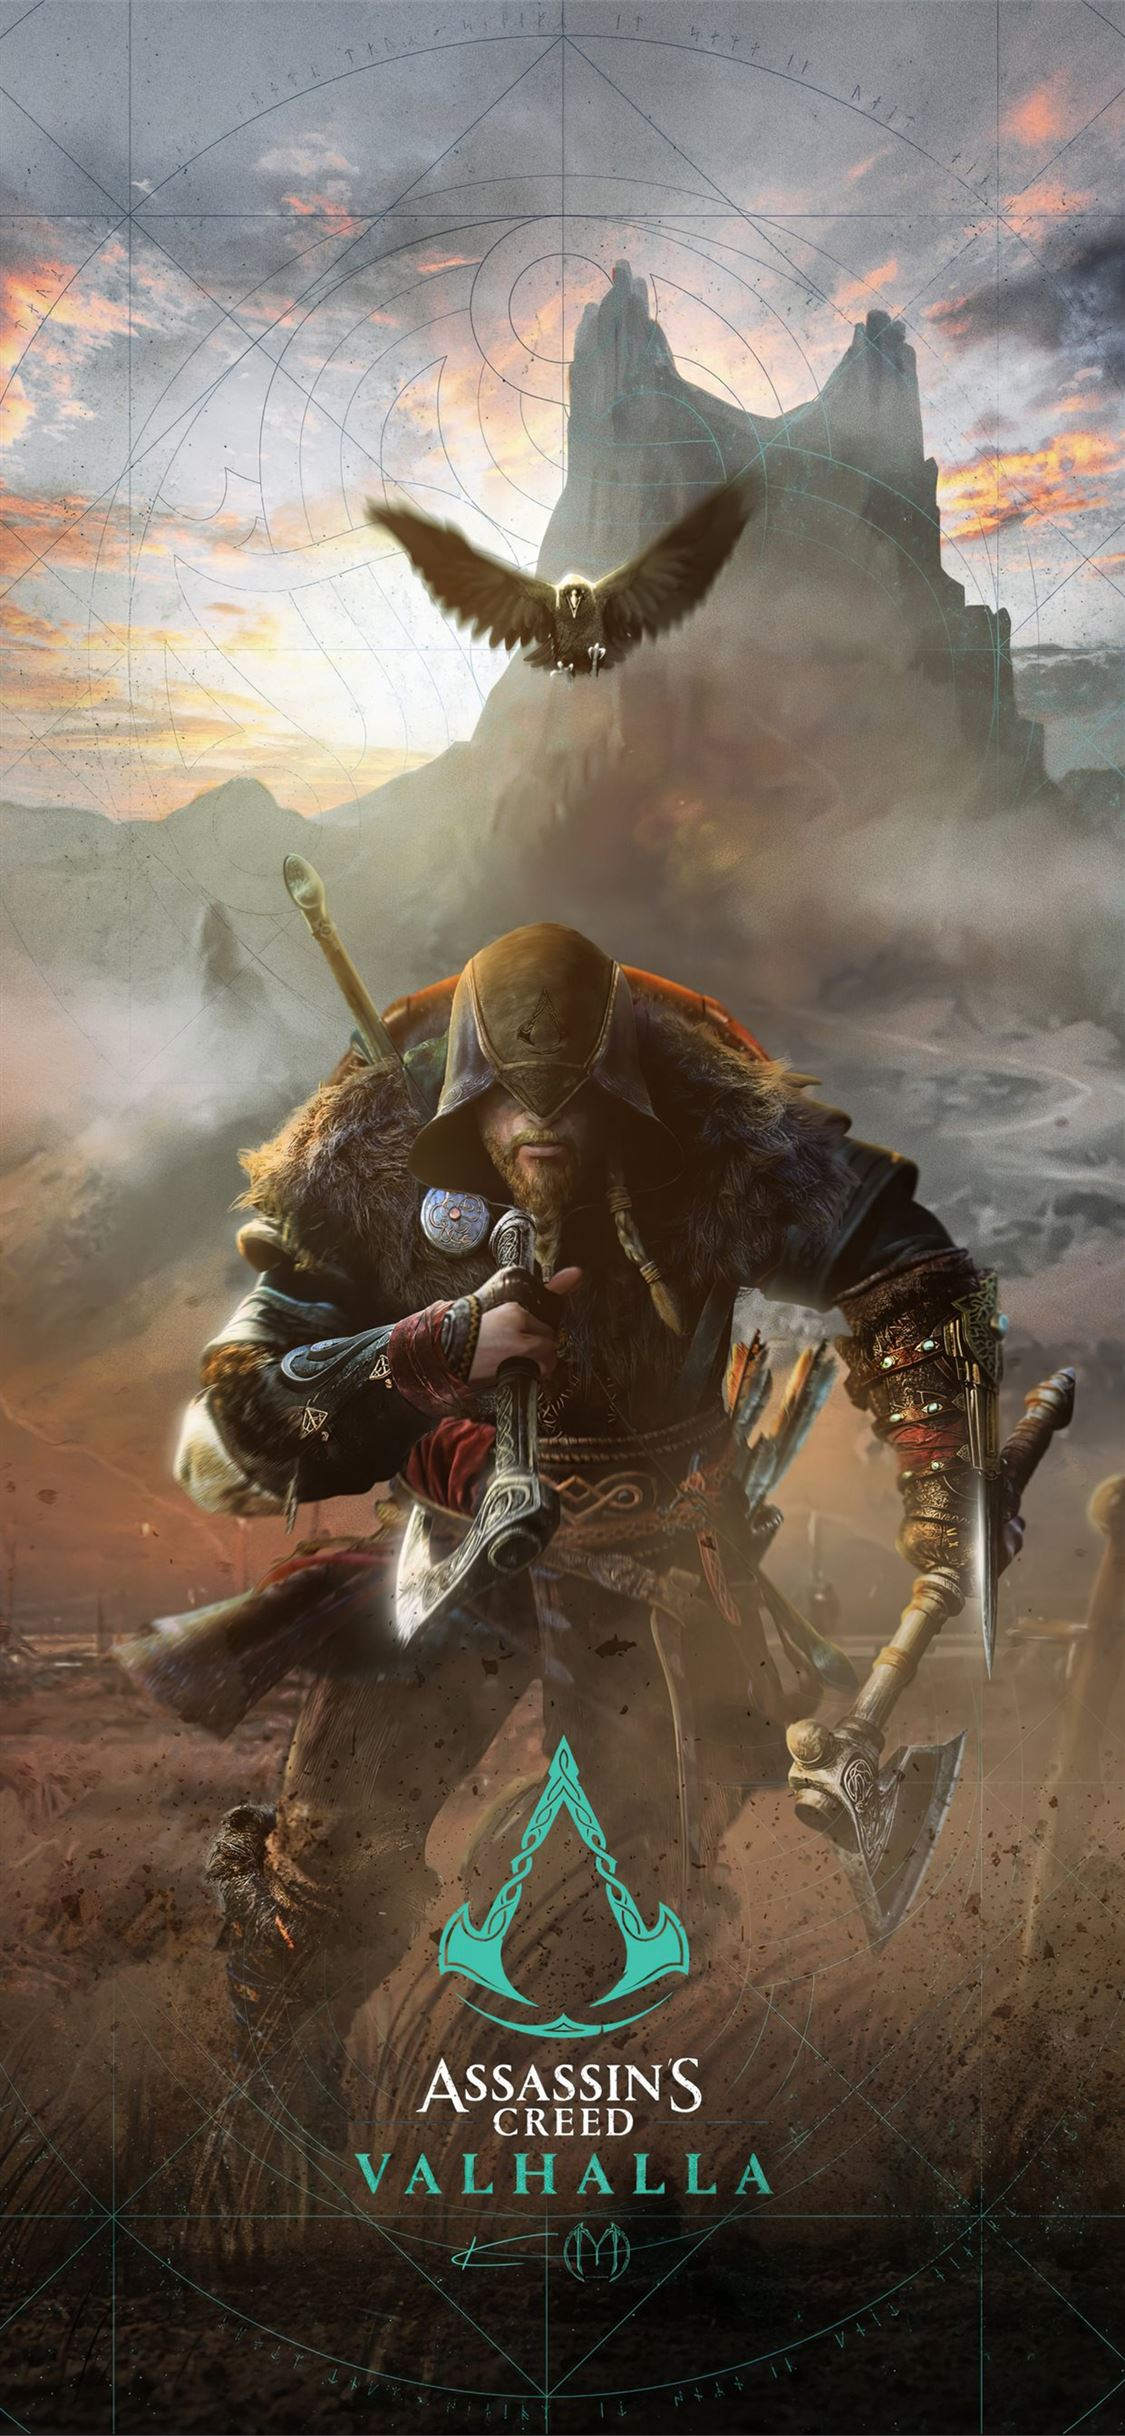 assassins creed valhalla game 2020 iPhone X Wallpapers Download 1125x2436